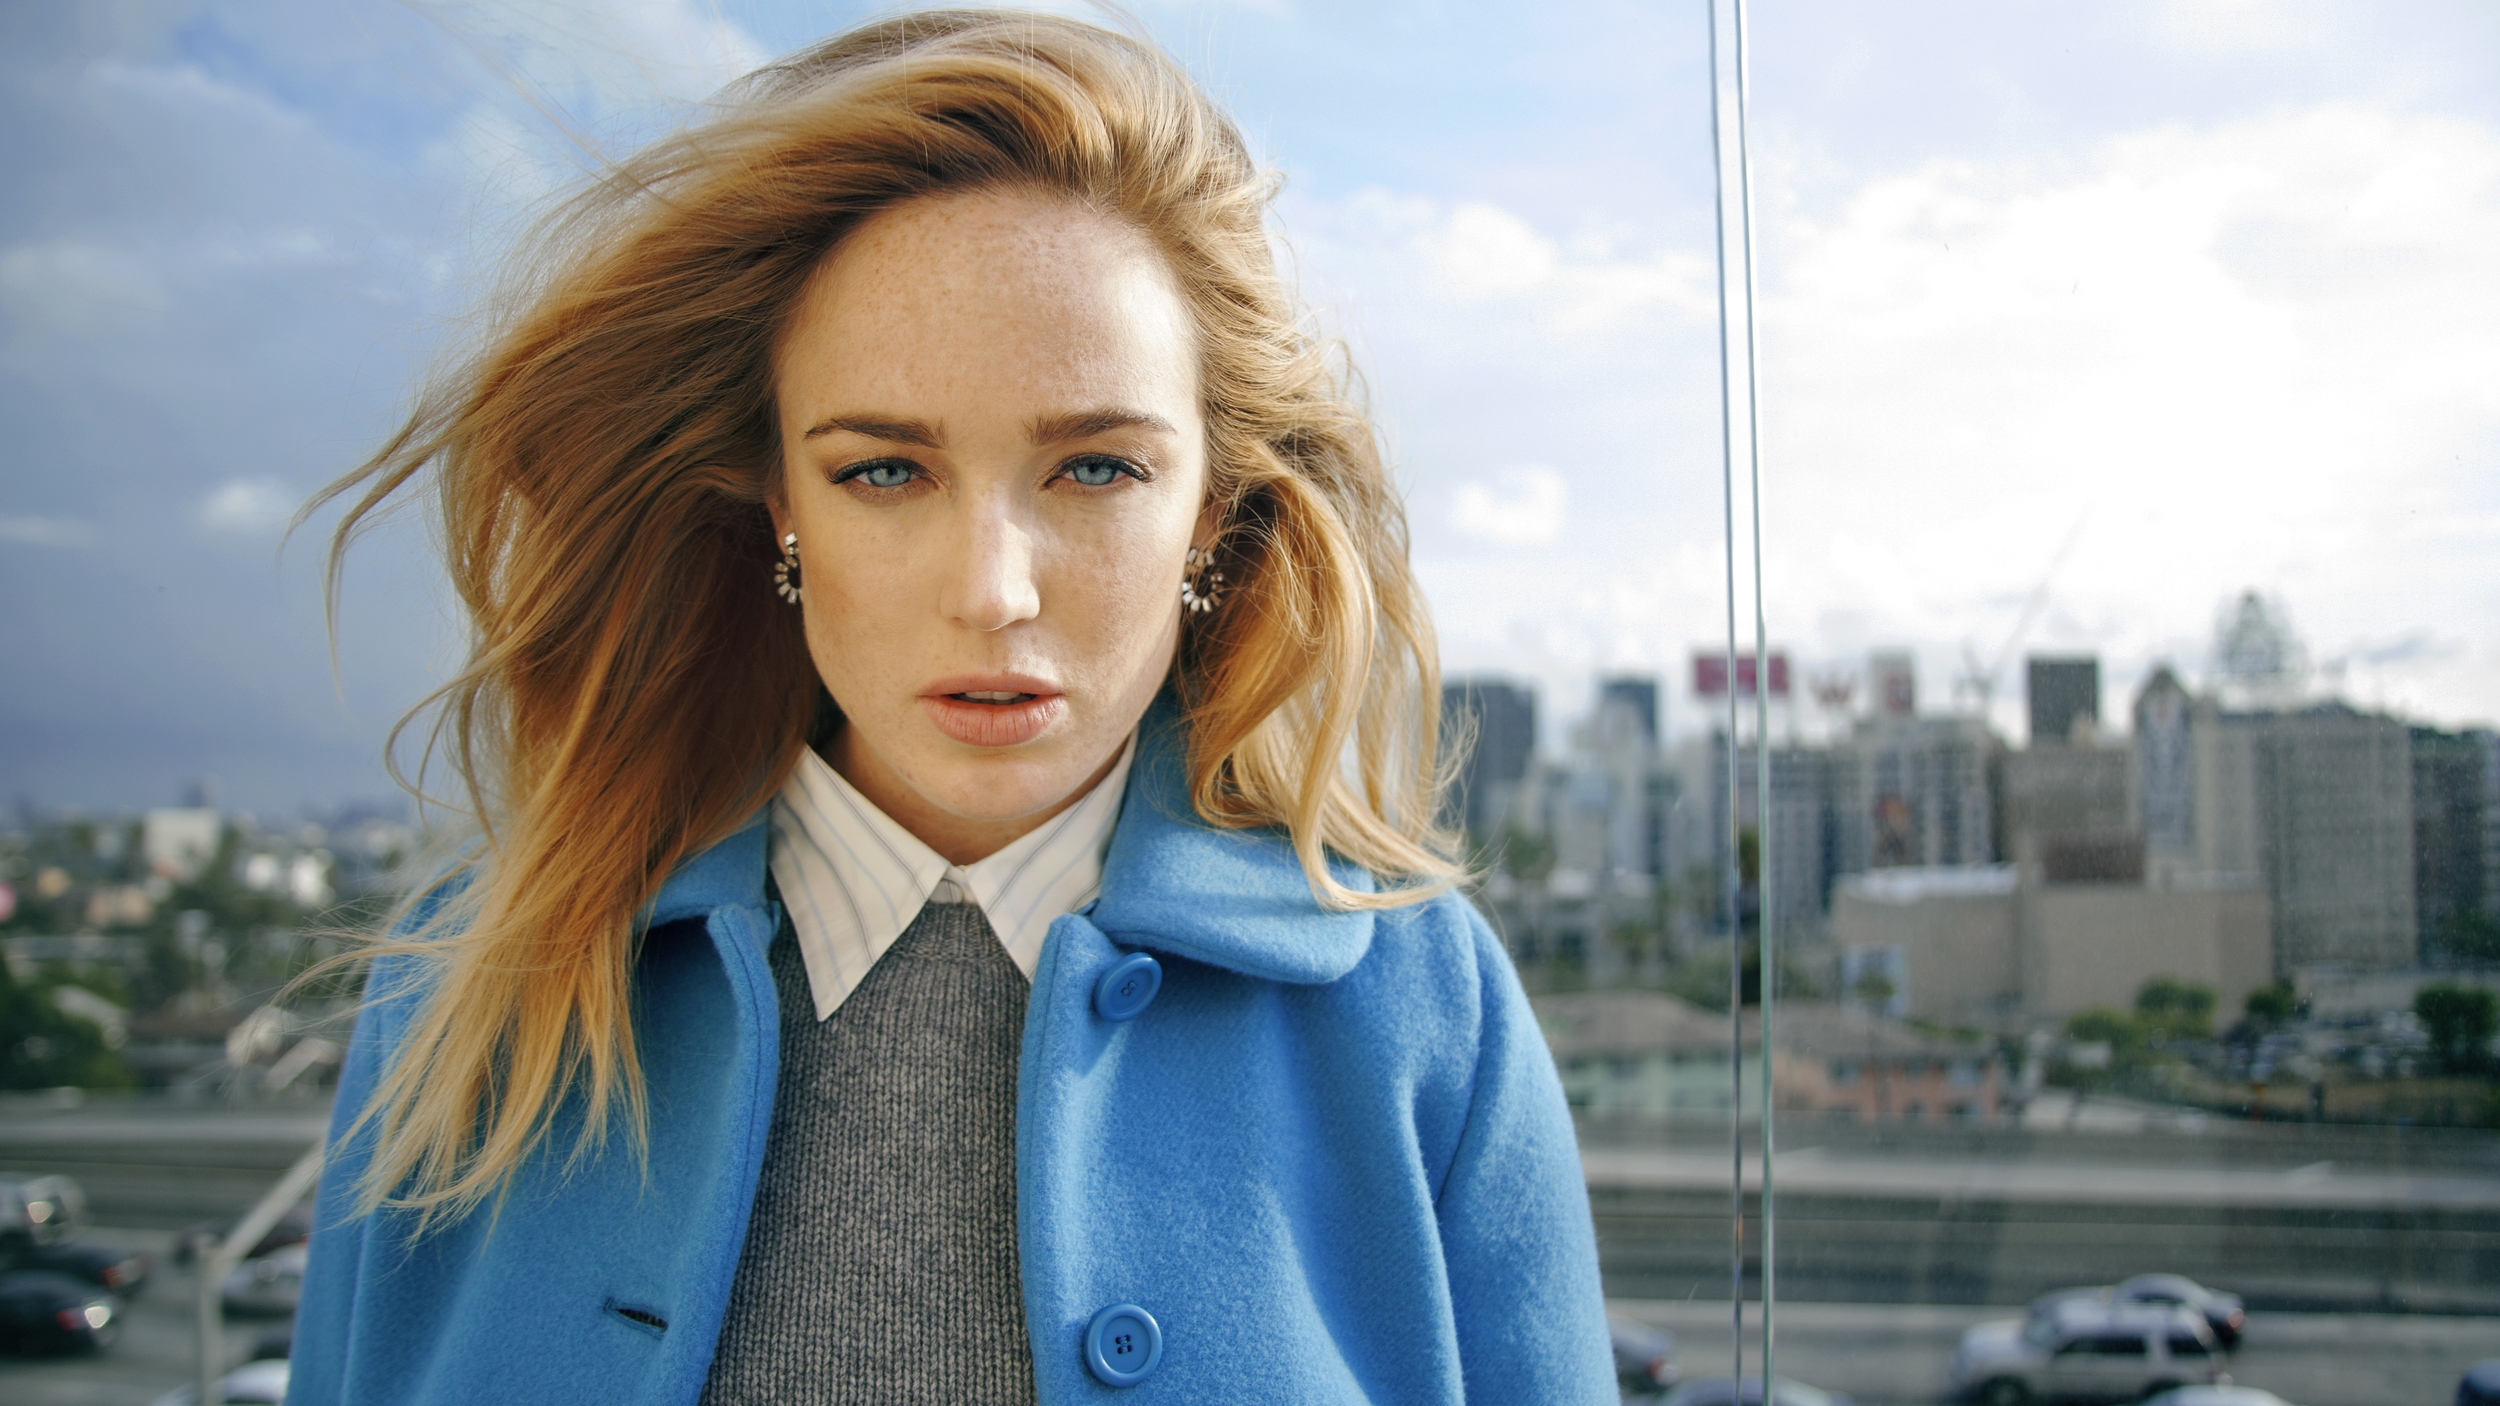 Caity Lotz nudes (13 photos), hacked Topless, Instagram, legs 2020